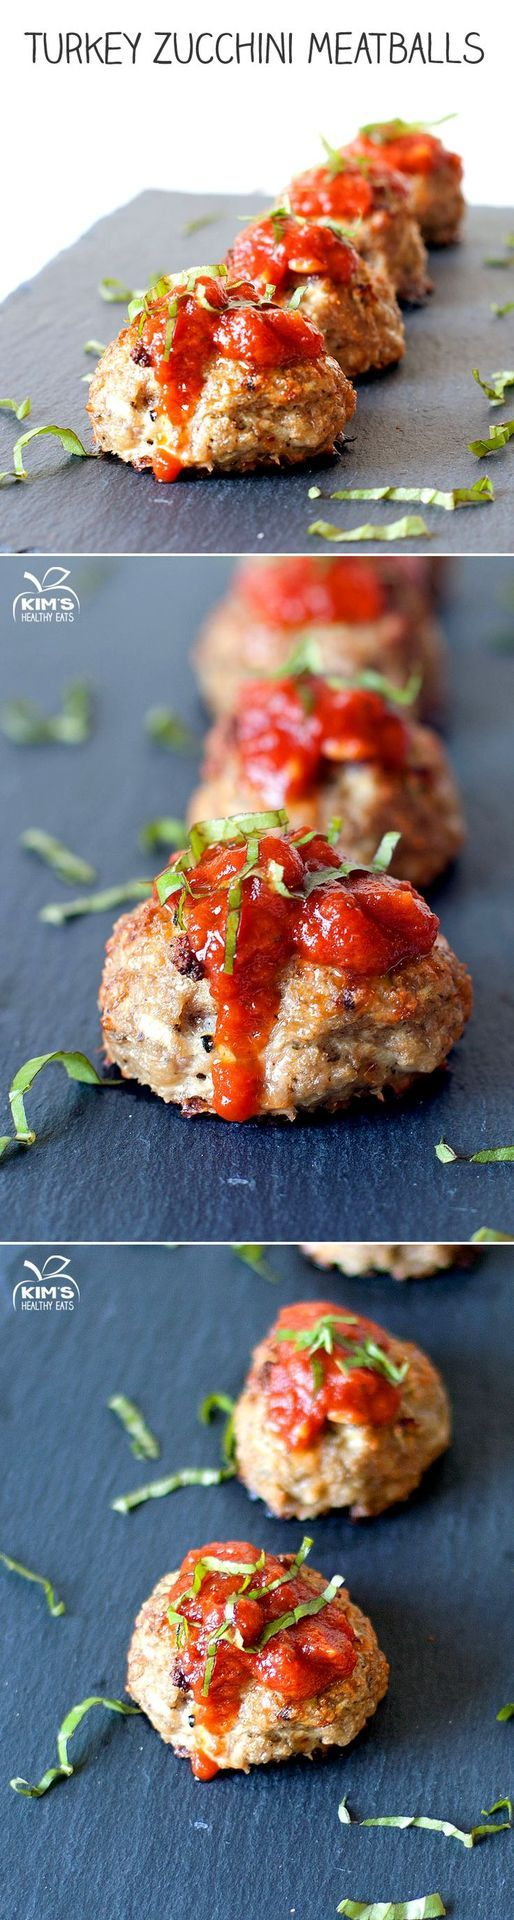 Healthy, yummy turkey zucchini meatballs! This recipe tastes just like the real thing and is so much lower in fat and calories, plus it has ...